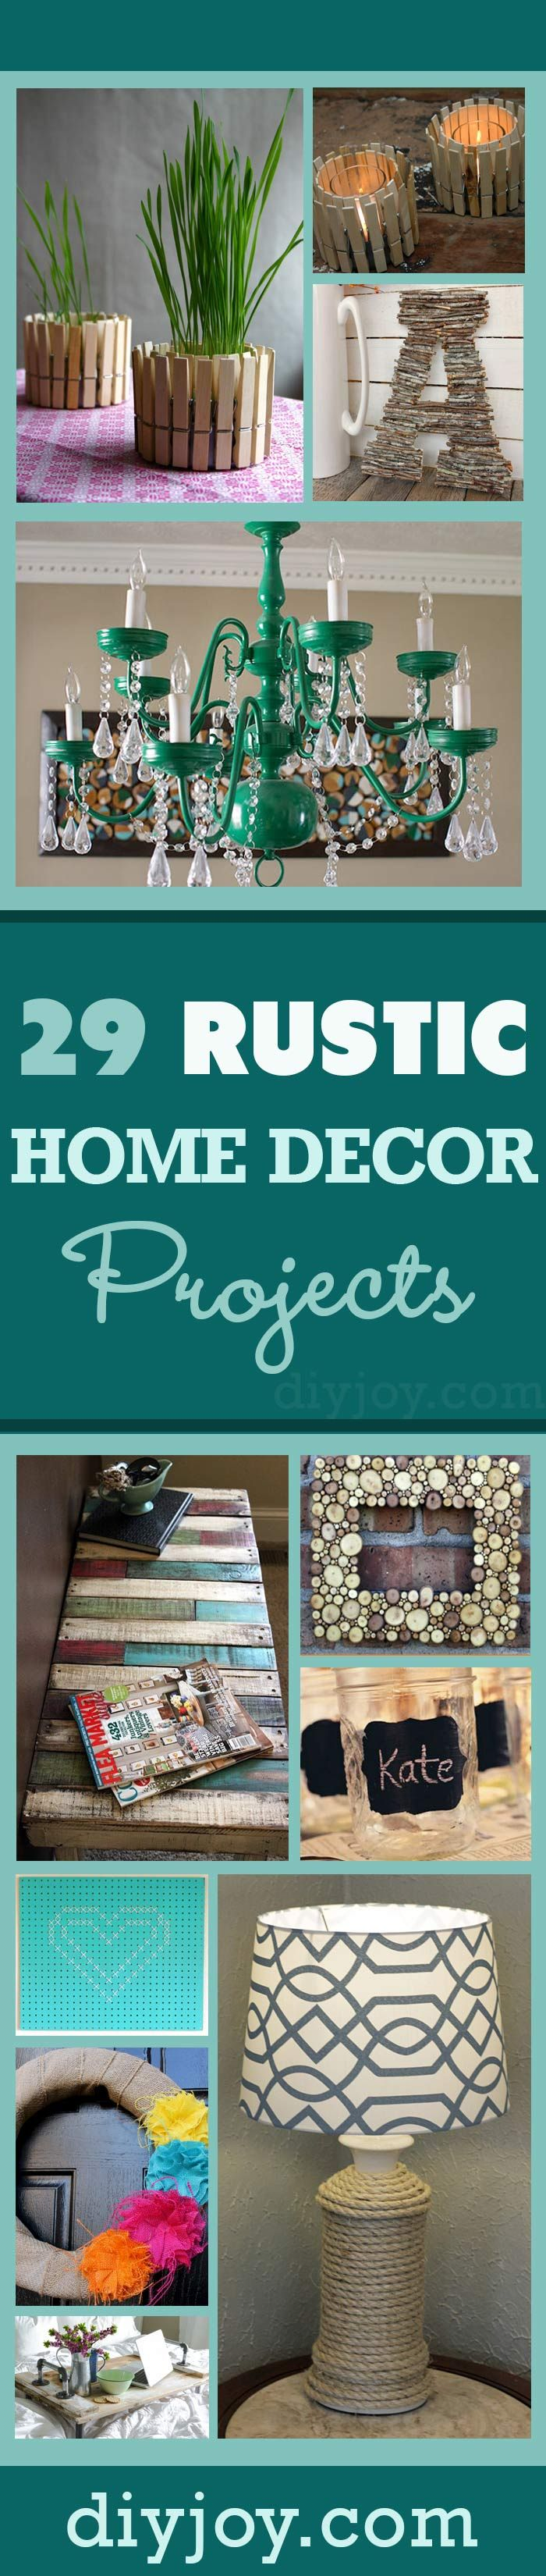 105 best diy projects images on pinterest recycling crafts and 29 rustic diy home decor ideas solutioingenieria Choice Image